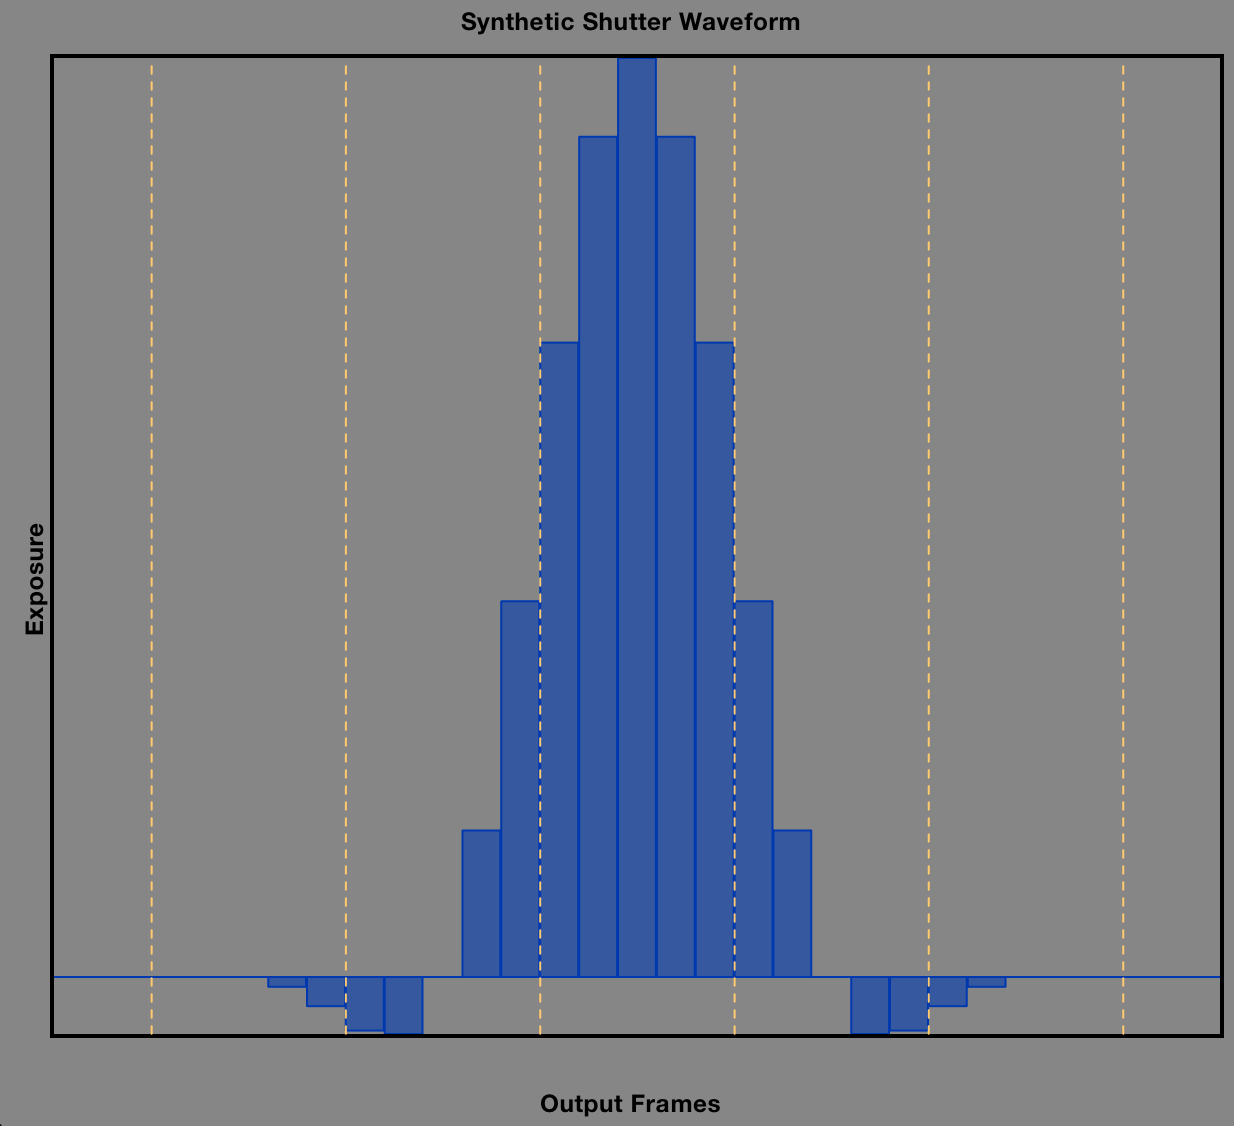 A shutter waveform shown in Time Shaper. Each blue bar represents an incoming frame, and the height of the bar indicates how much weighting it will get in the output frame. The yellow lines show the length of an output frame.